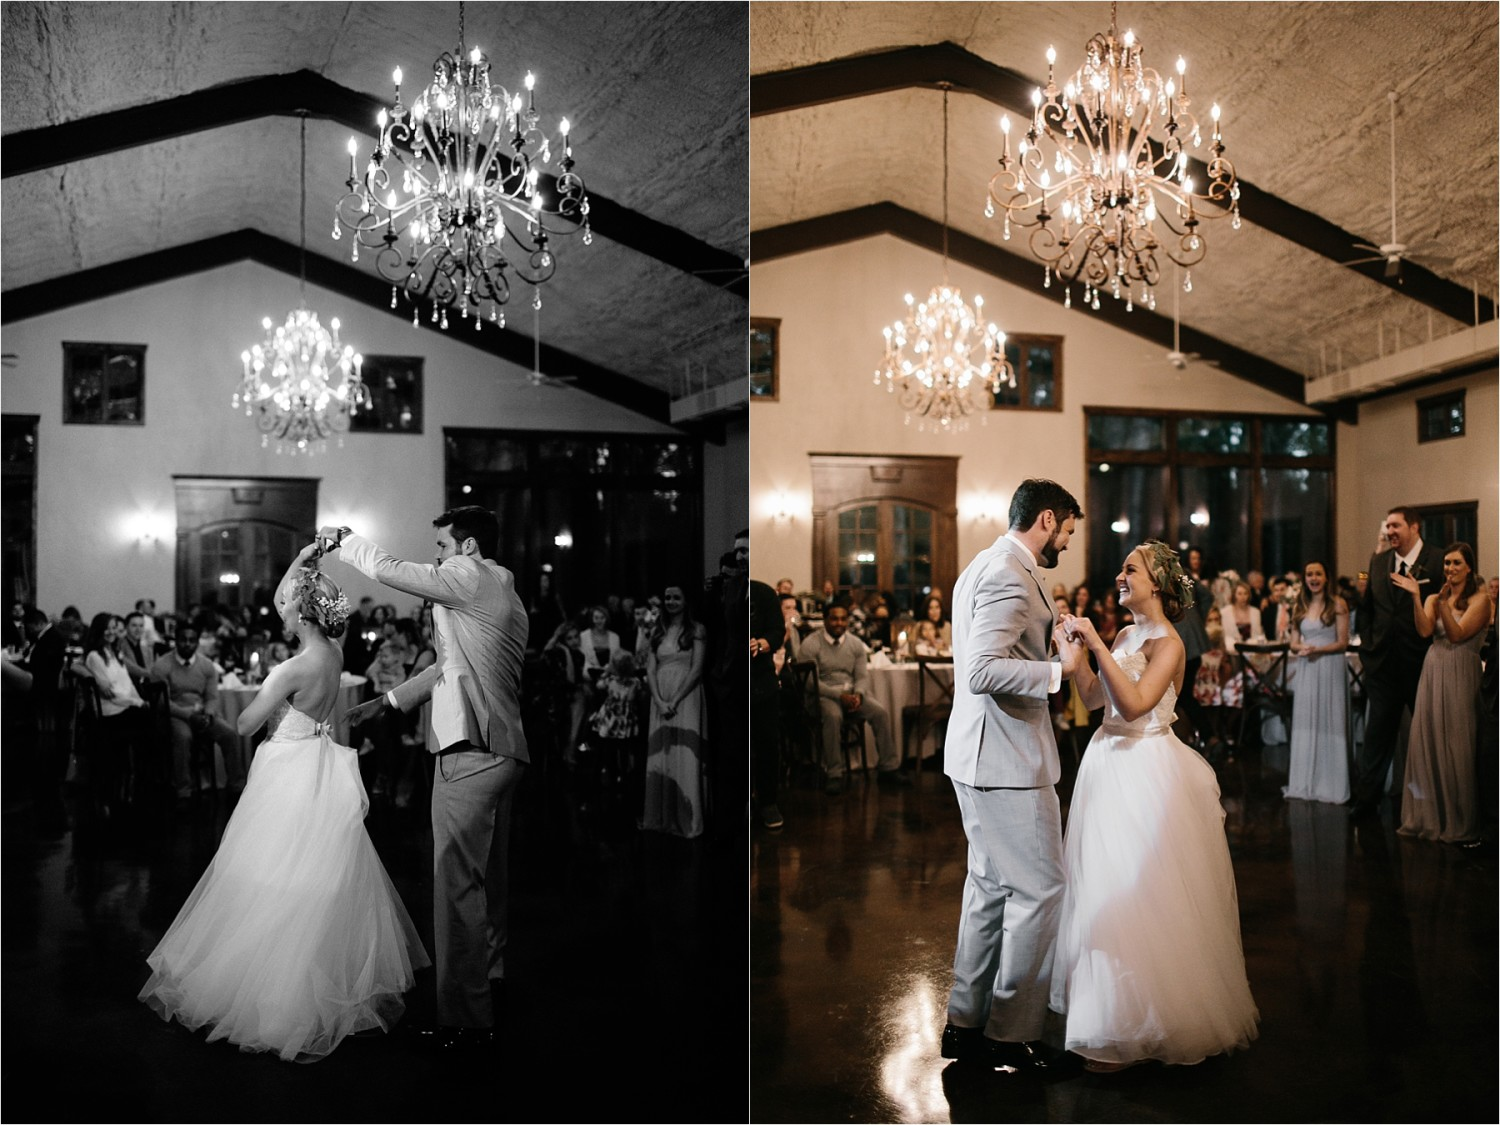 brad-lara-__-a-grey-and-blush-pink-intimate-wedding-at-hidden-waters-event-center-in-waxahachie-tx-by-north-texas-wedding-photographer-rachel-meagan-photography-_-079